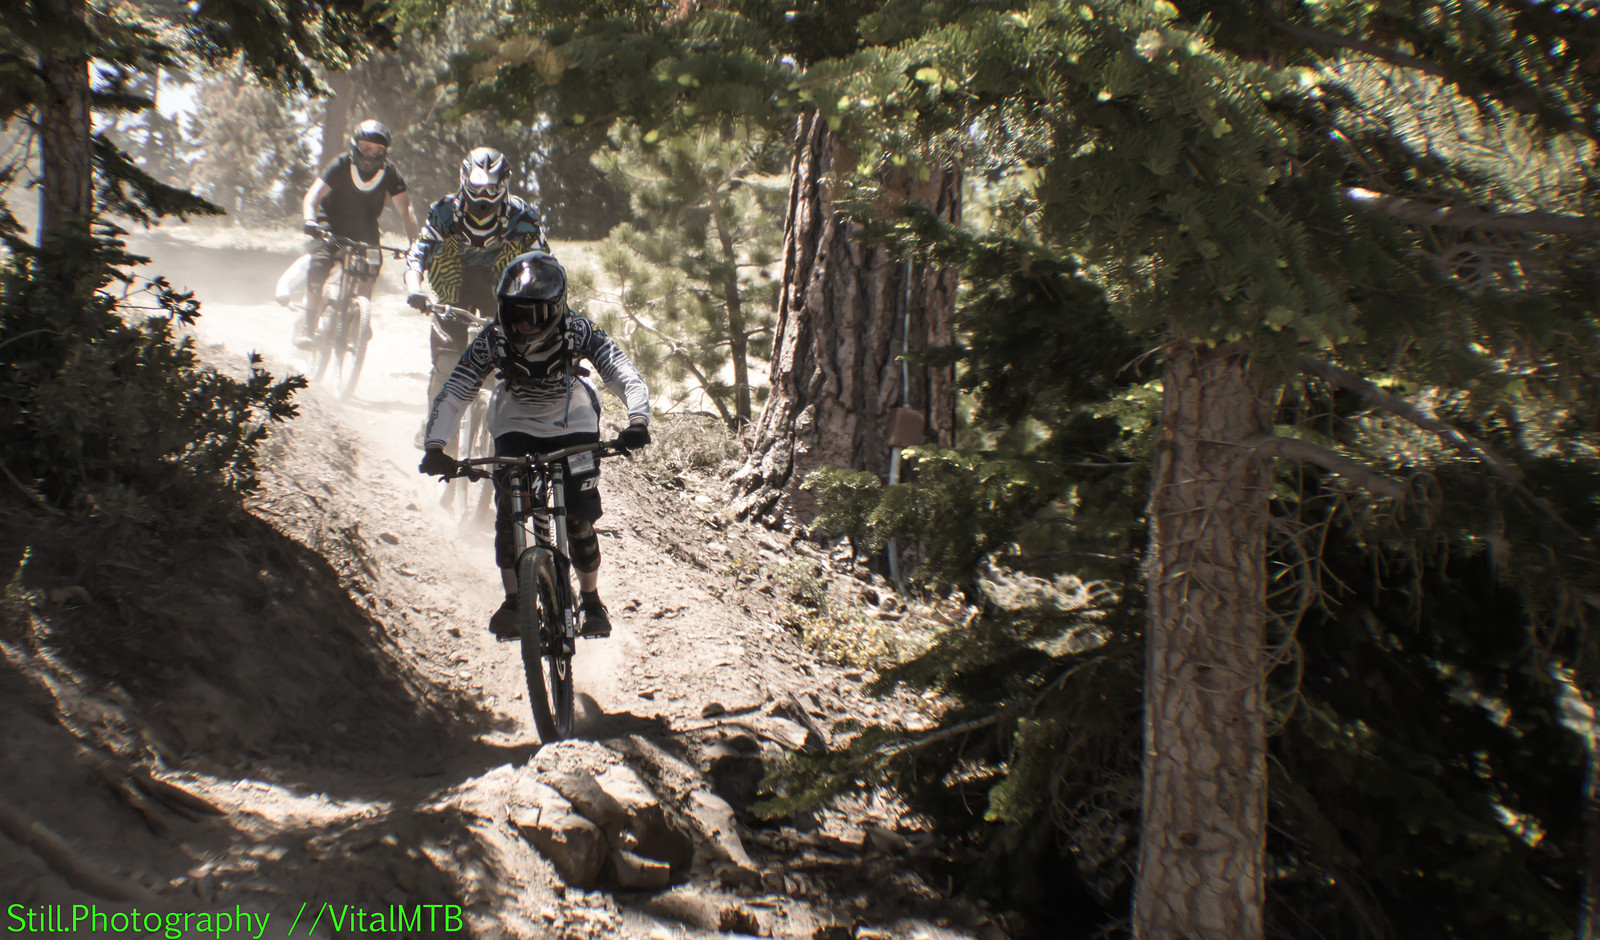 Snow Summit) - Stillmrg Photography - Mountain Biking Pictures - Vital MTB